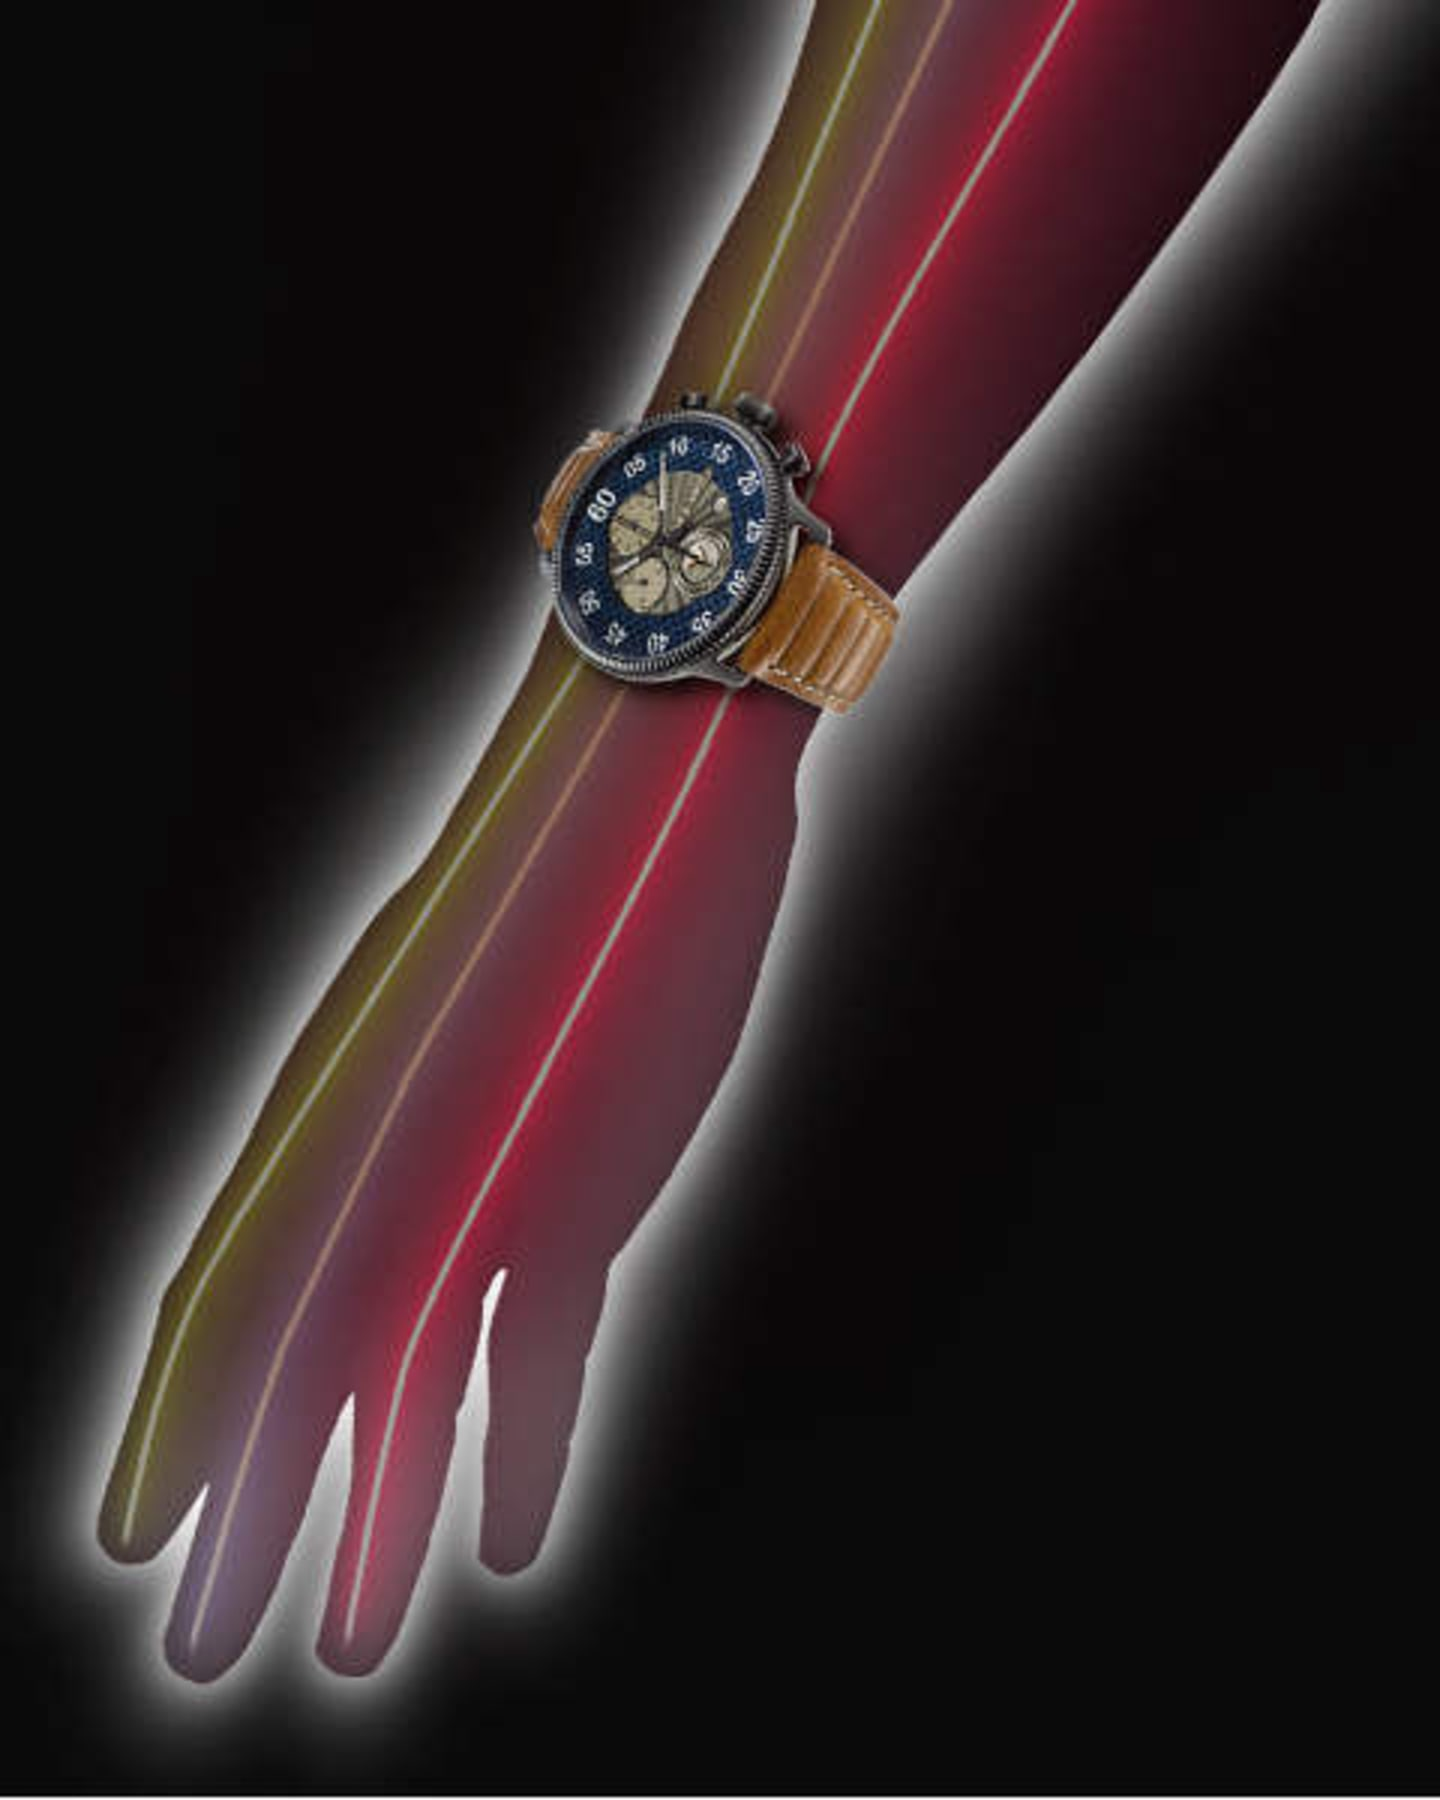 Diagram of the arm and all the energy paths it contains.